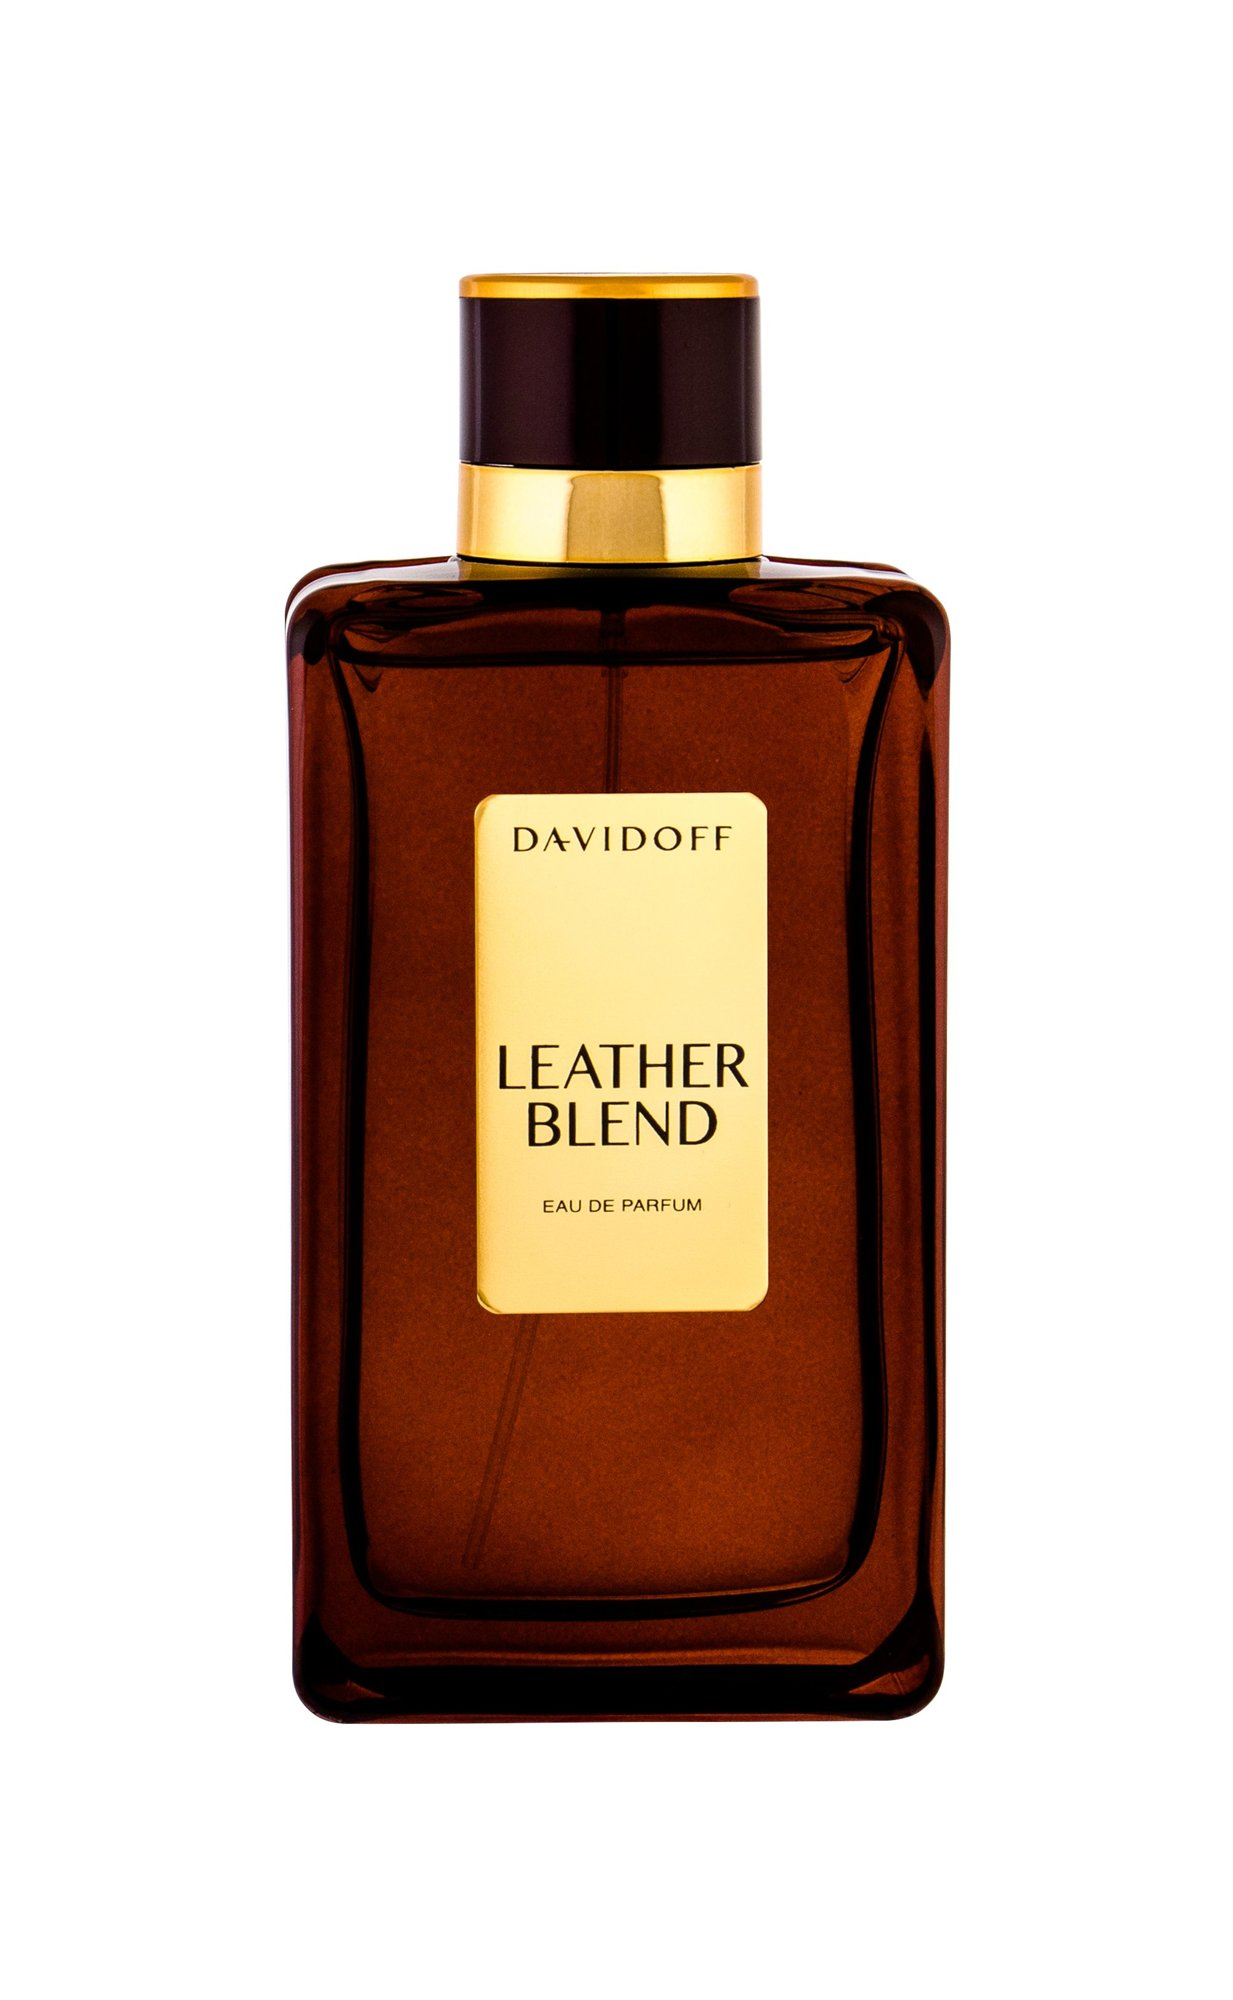 Davidoff Leather Blend Eau de Parfum 100ml